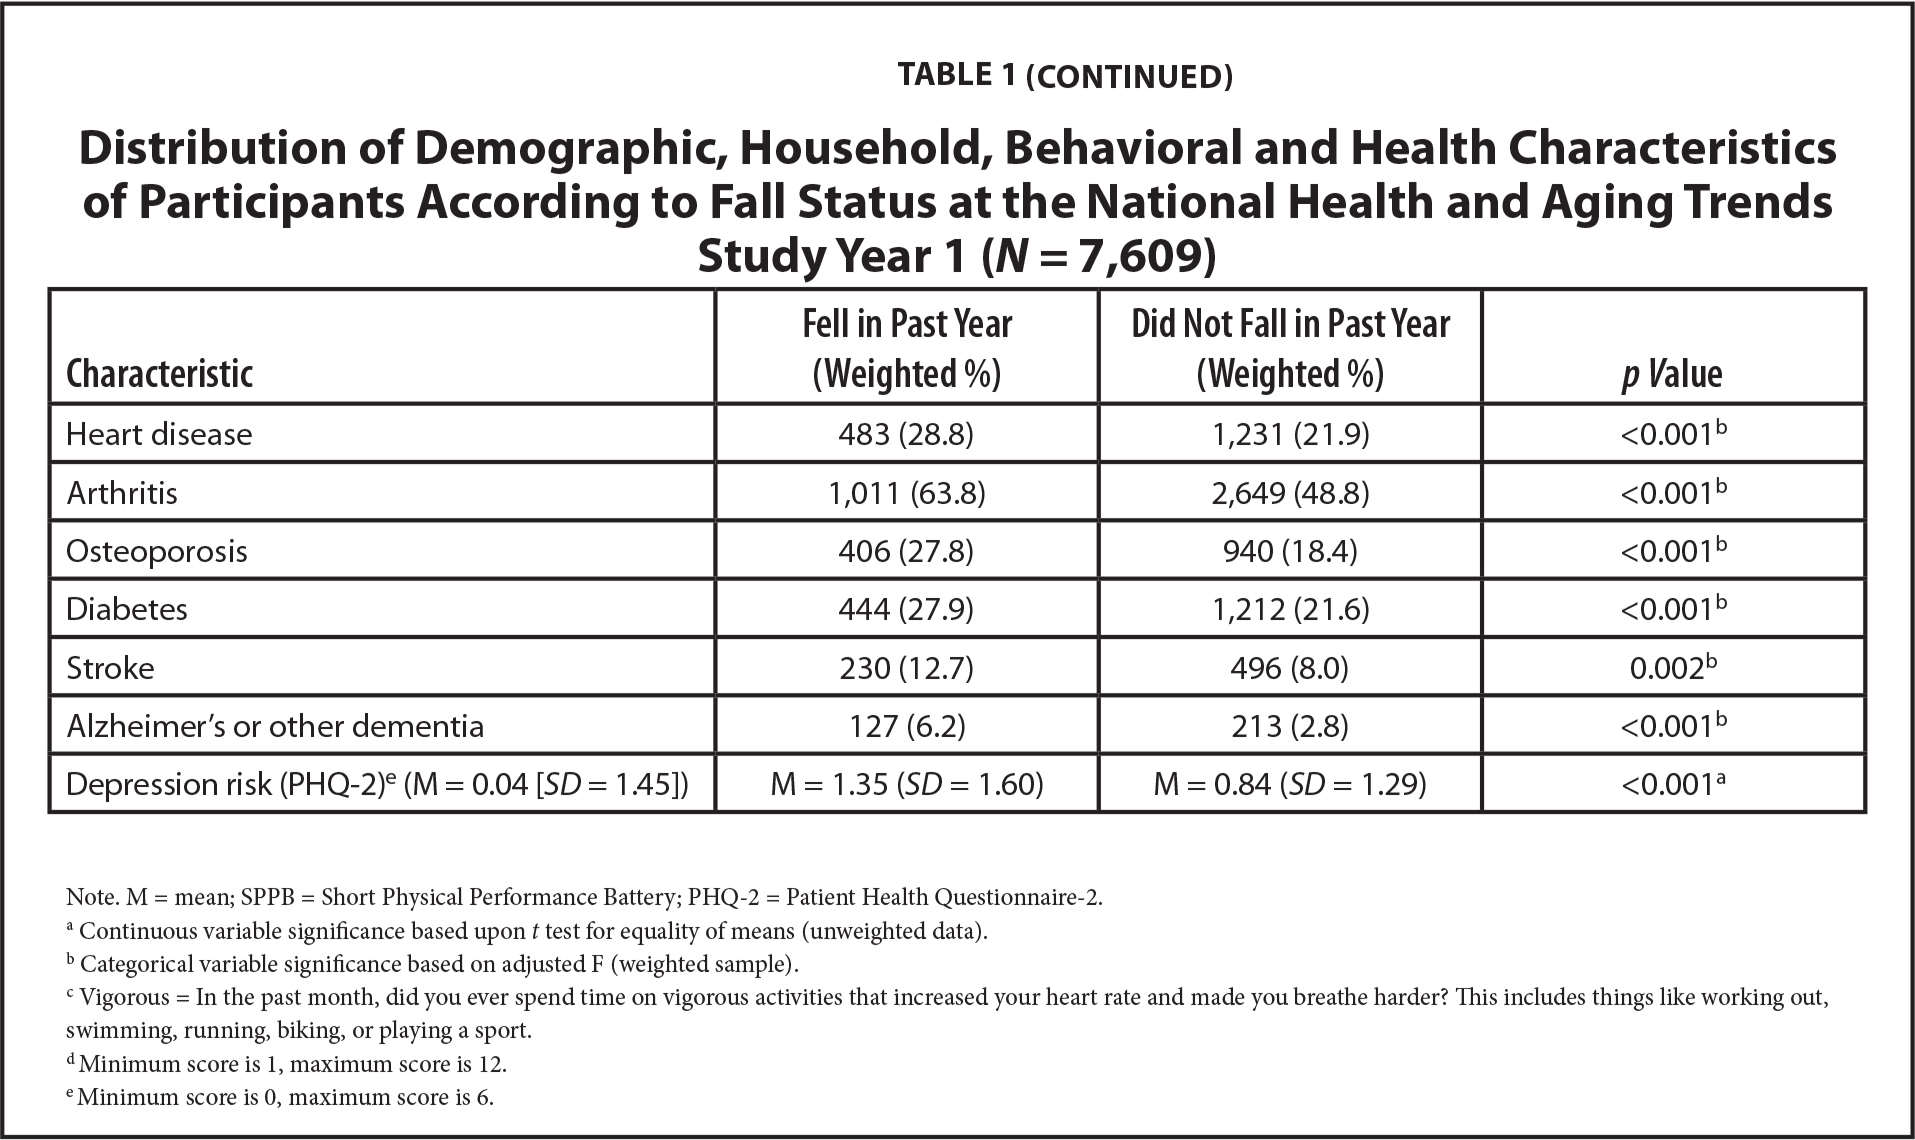 Distribution of Demographic, Household, Behavioral and Health Characteristics of Participants According to Fall Status at the National Health and Aging Trends Study Year 1 (N = 7,609)